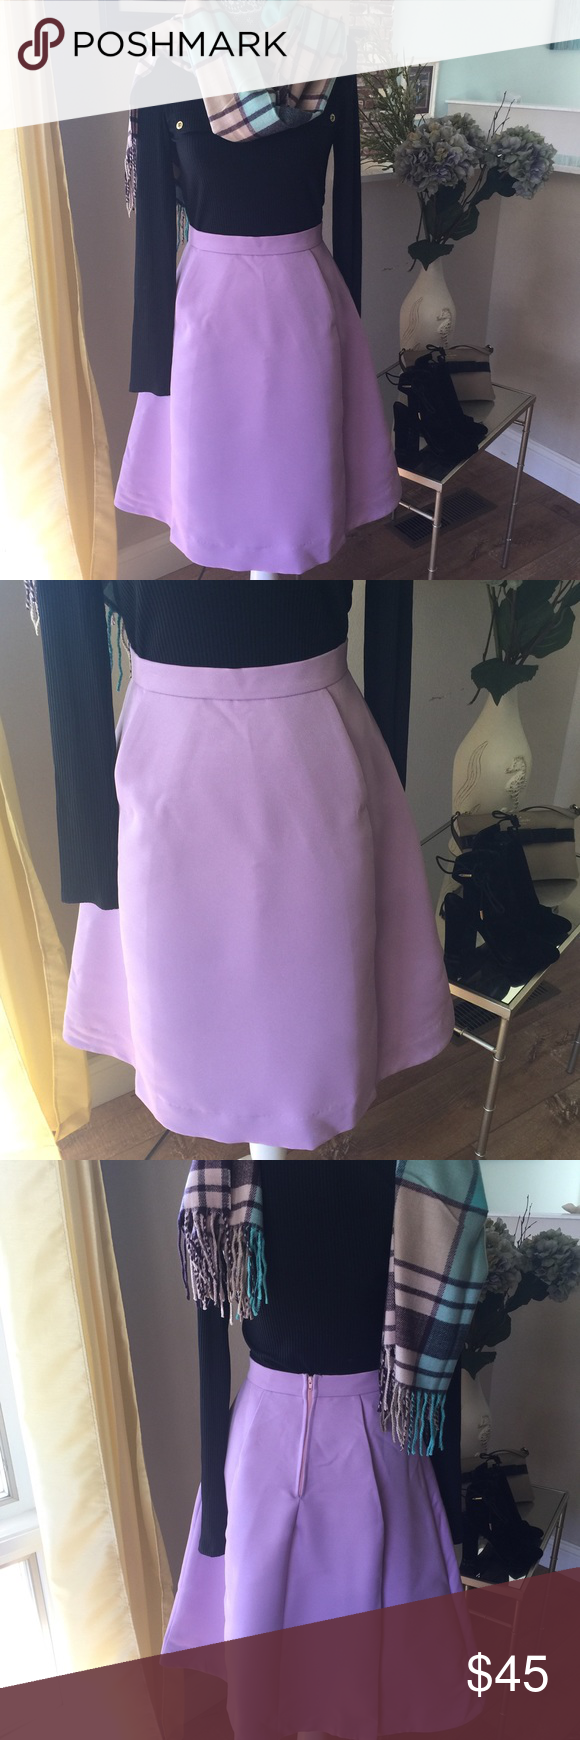 Lavender Pleated Skirt Classic pleated skirt in lavender. The full skirt is so hip this season. Paired with a fitted top a pair booties you are set! 💯% Polyester And fully lined. Dry Clean Only! size S M Skirts A-Line or Full